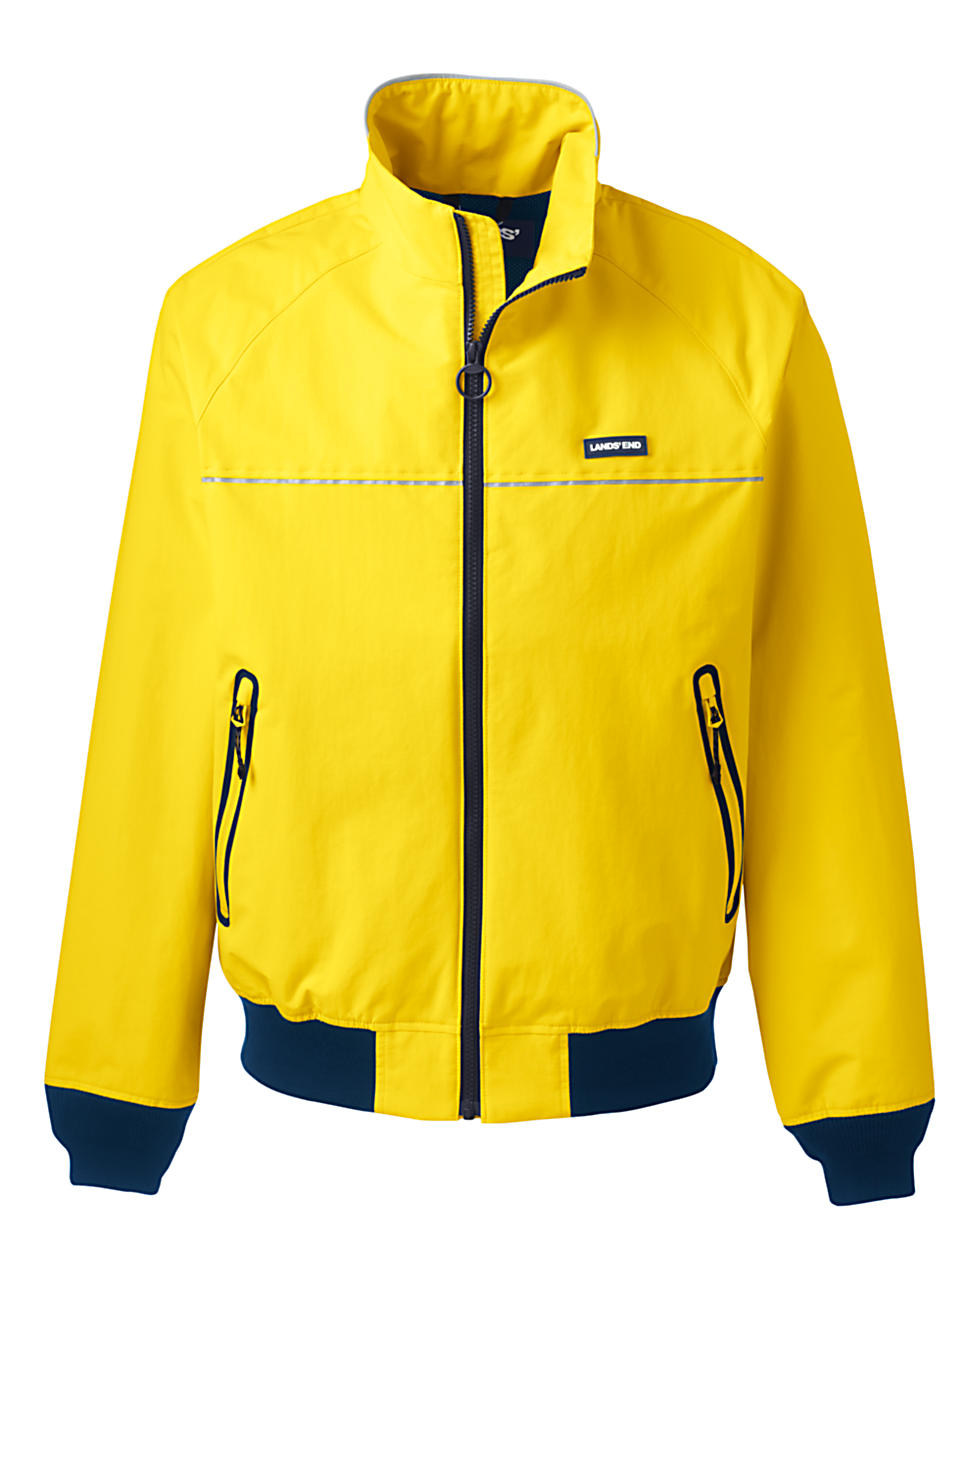 Lands End Mens Lightweight Classic Squall Jacket